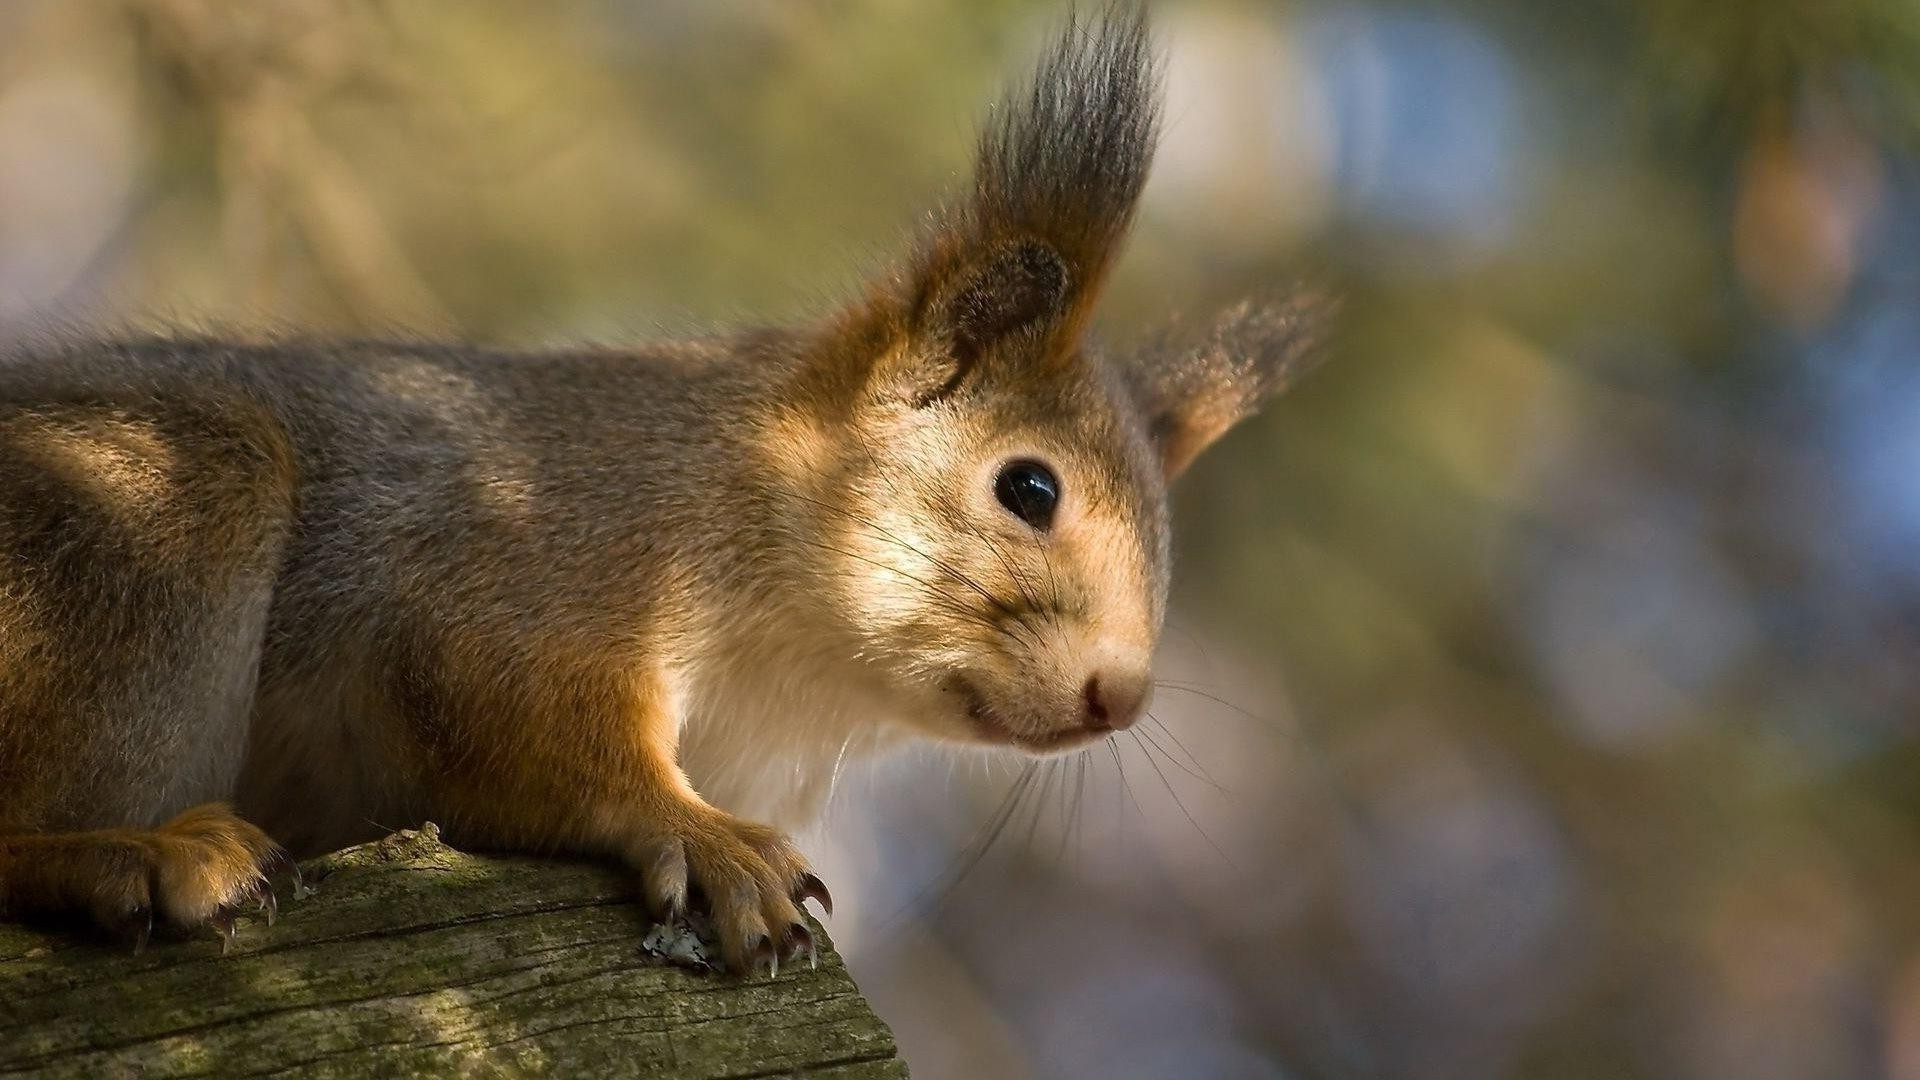 proteins mammal squirrel wildlife rodent cute nature outdoors fur animal eye looking little portrait